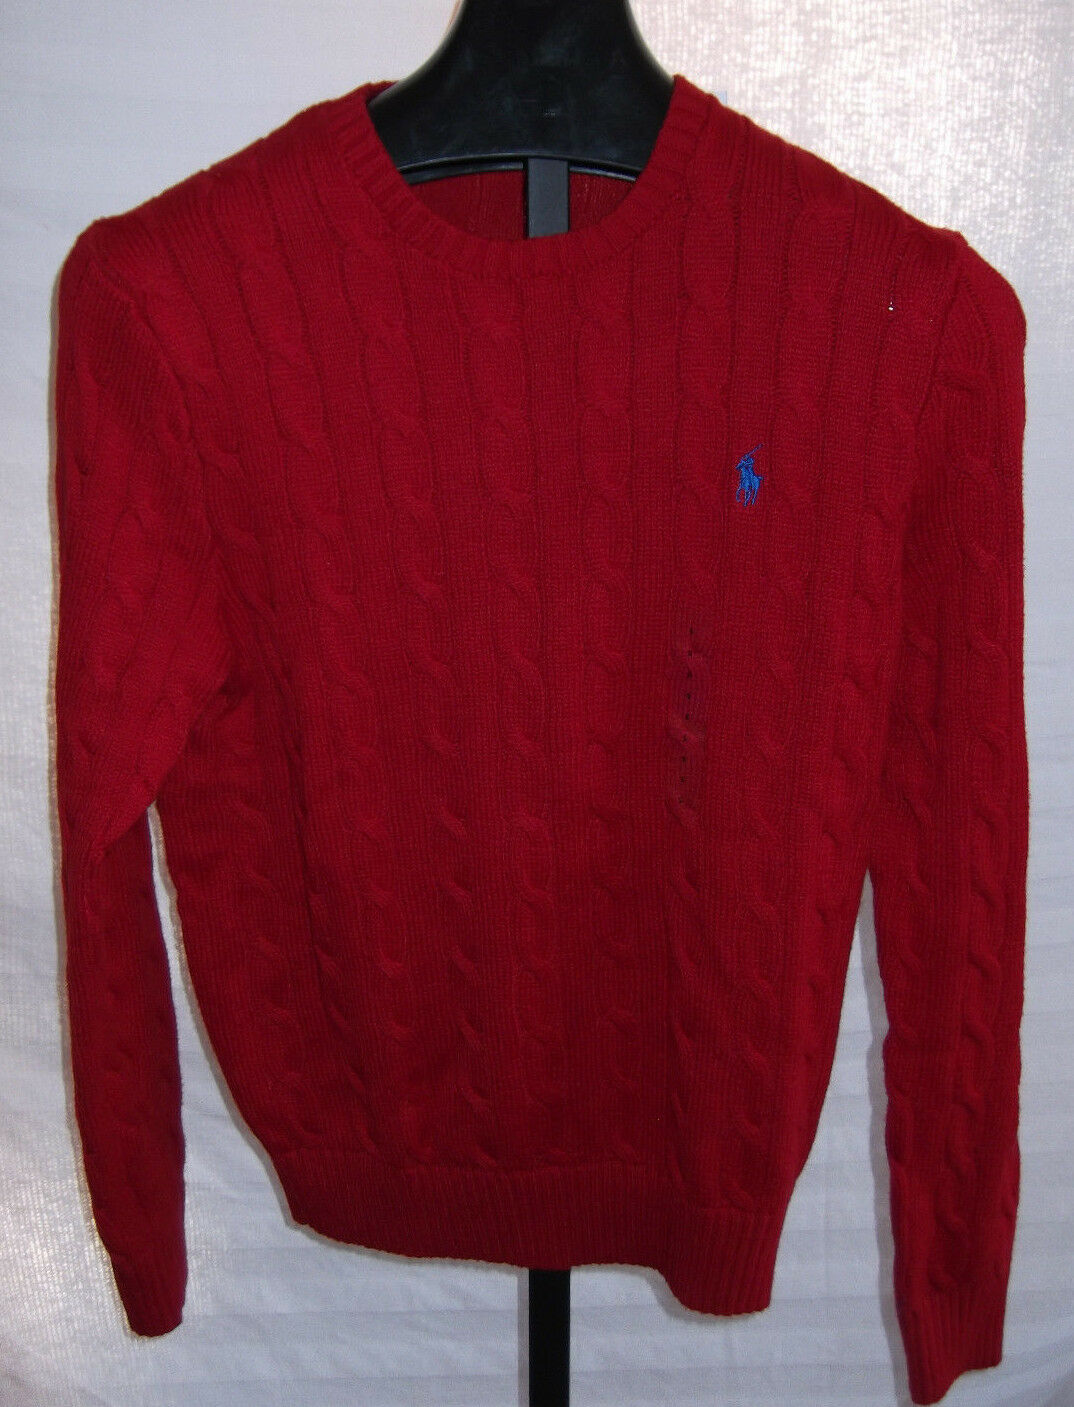 Polo Ralph Lauren Tudor Red Cotton Cable Knit Sweater Mens Size ...